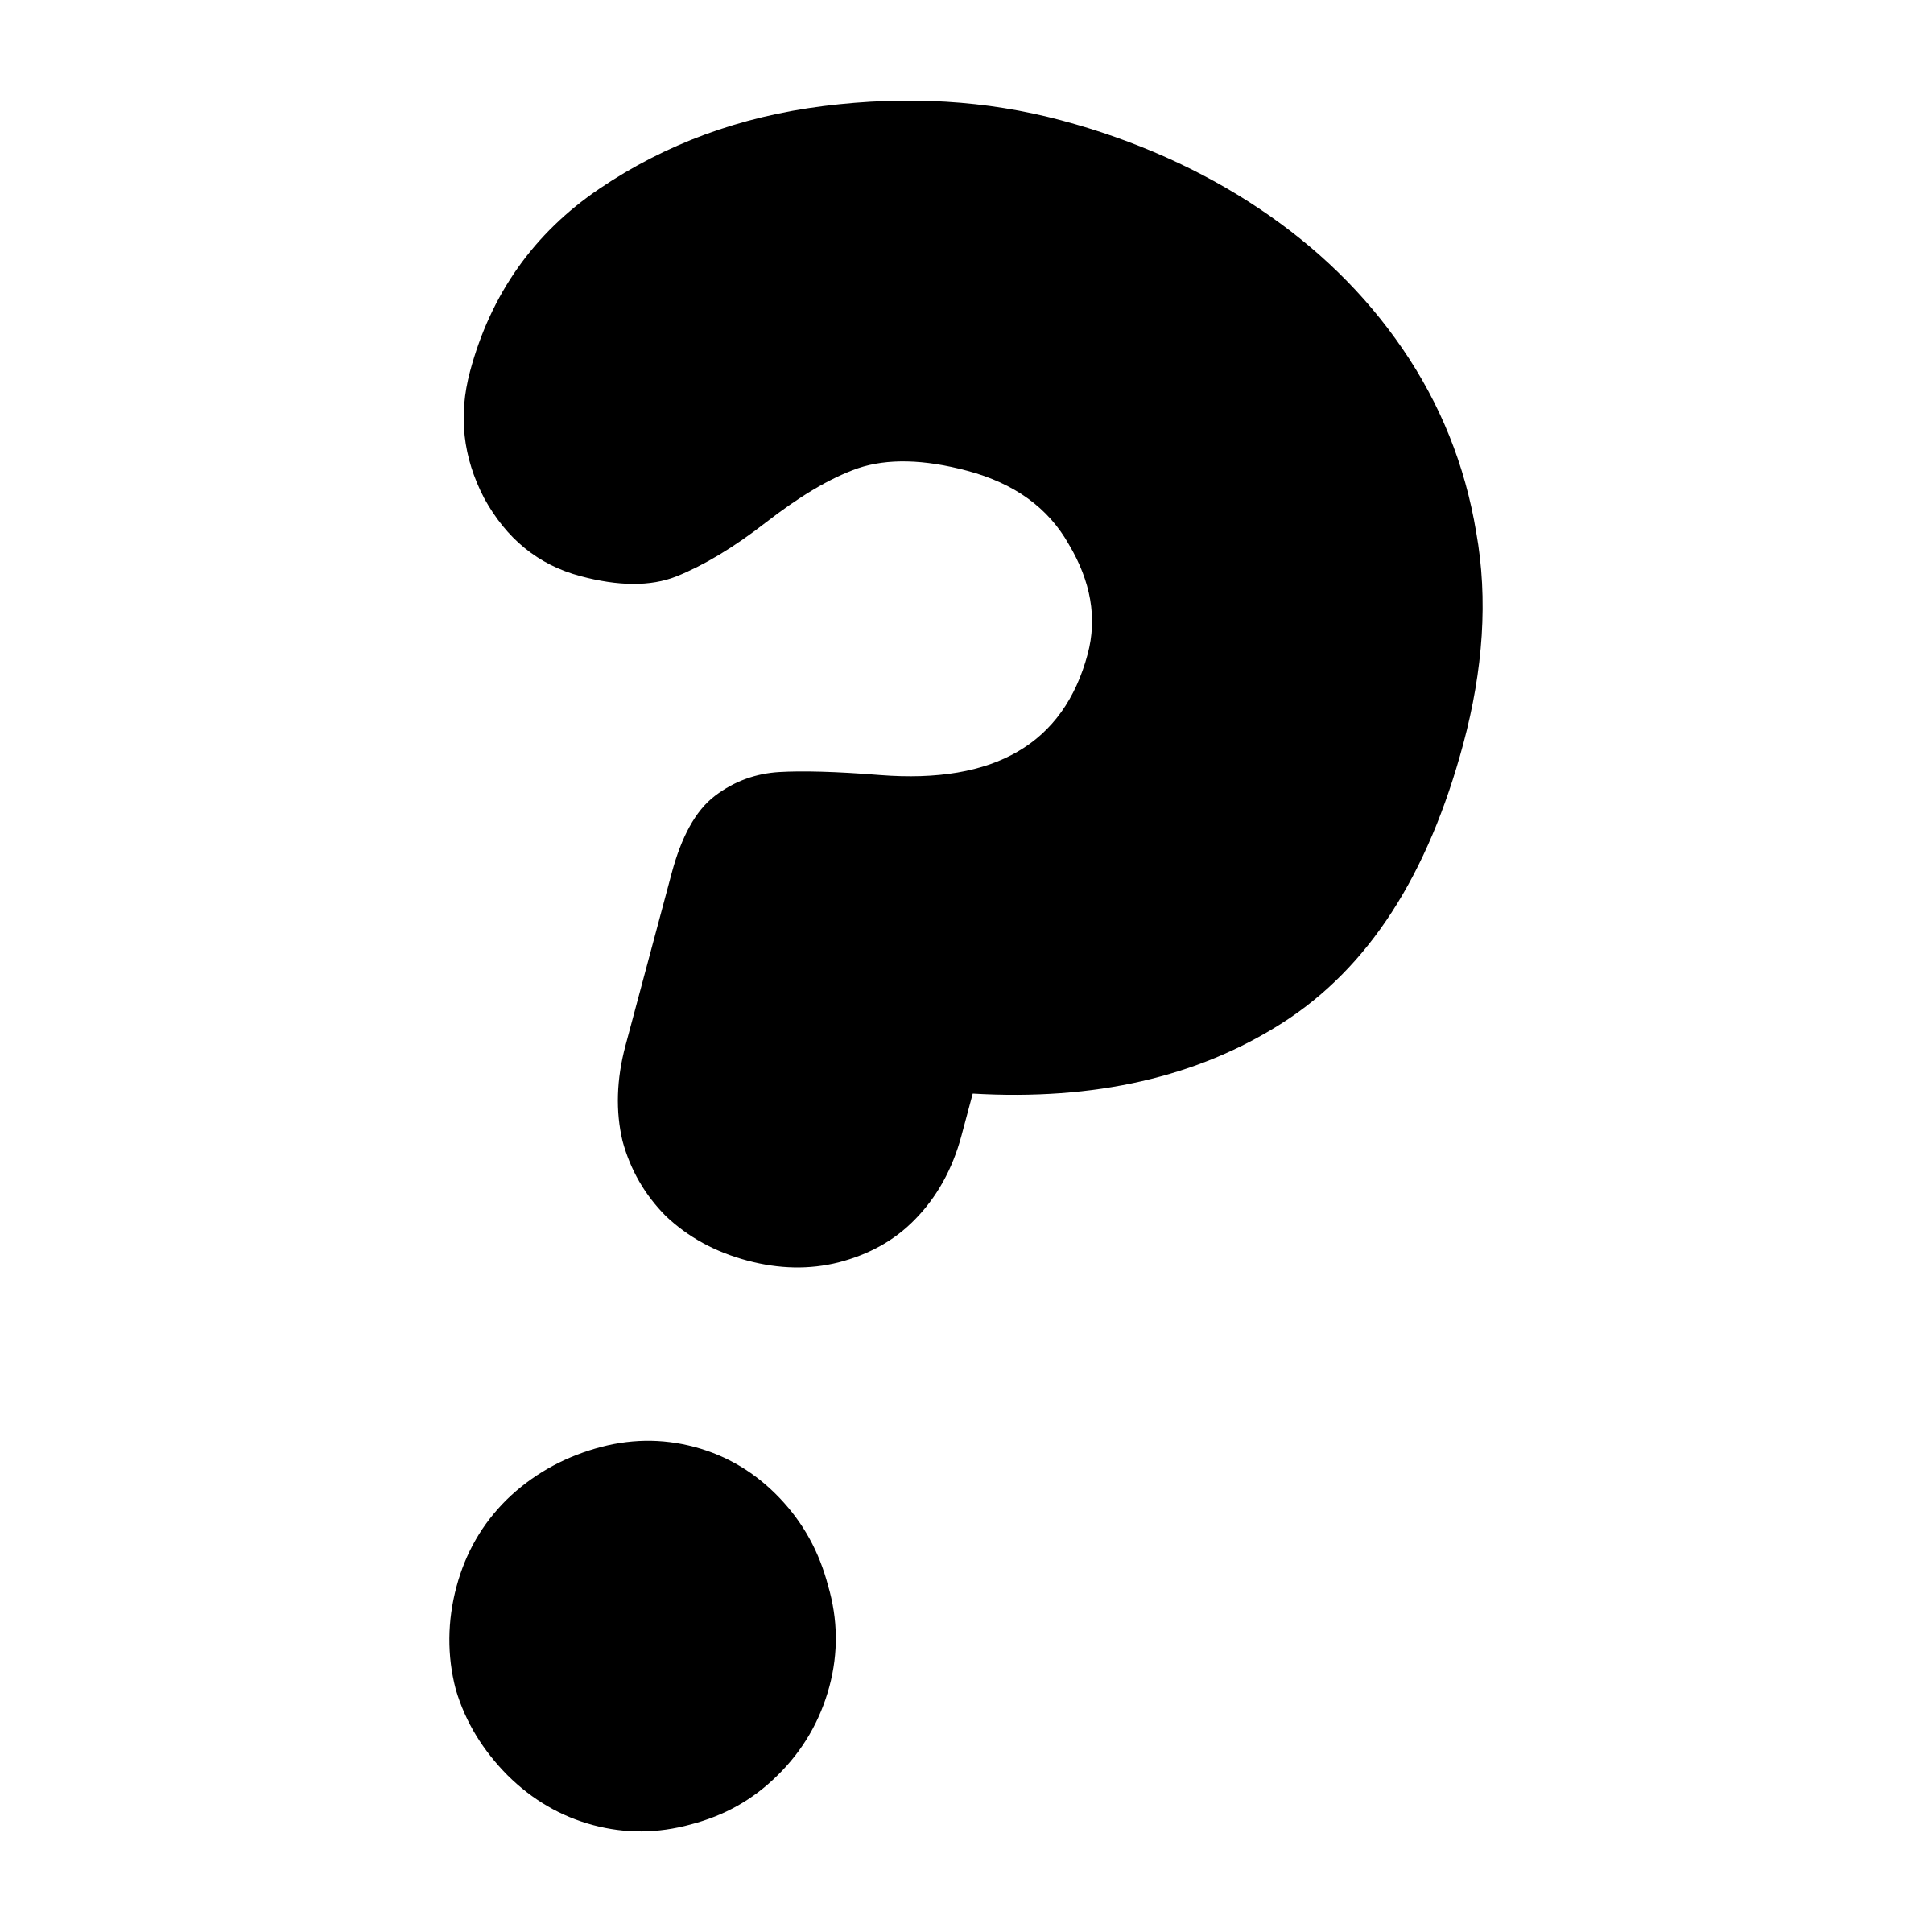 Questions Question Mark Clip Art Microsoft For